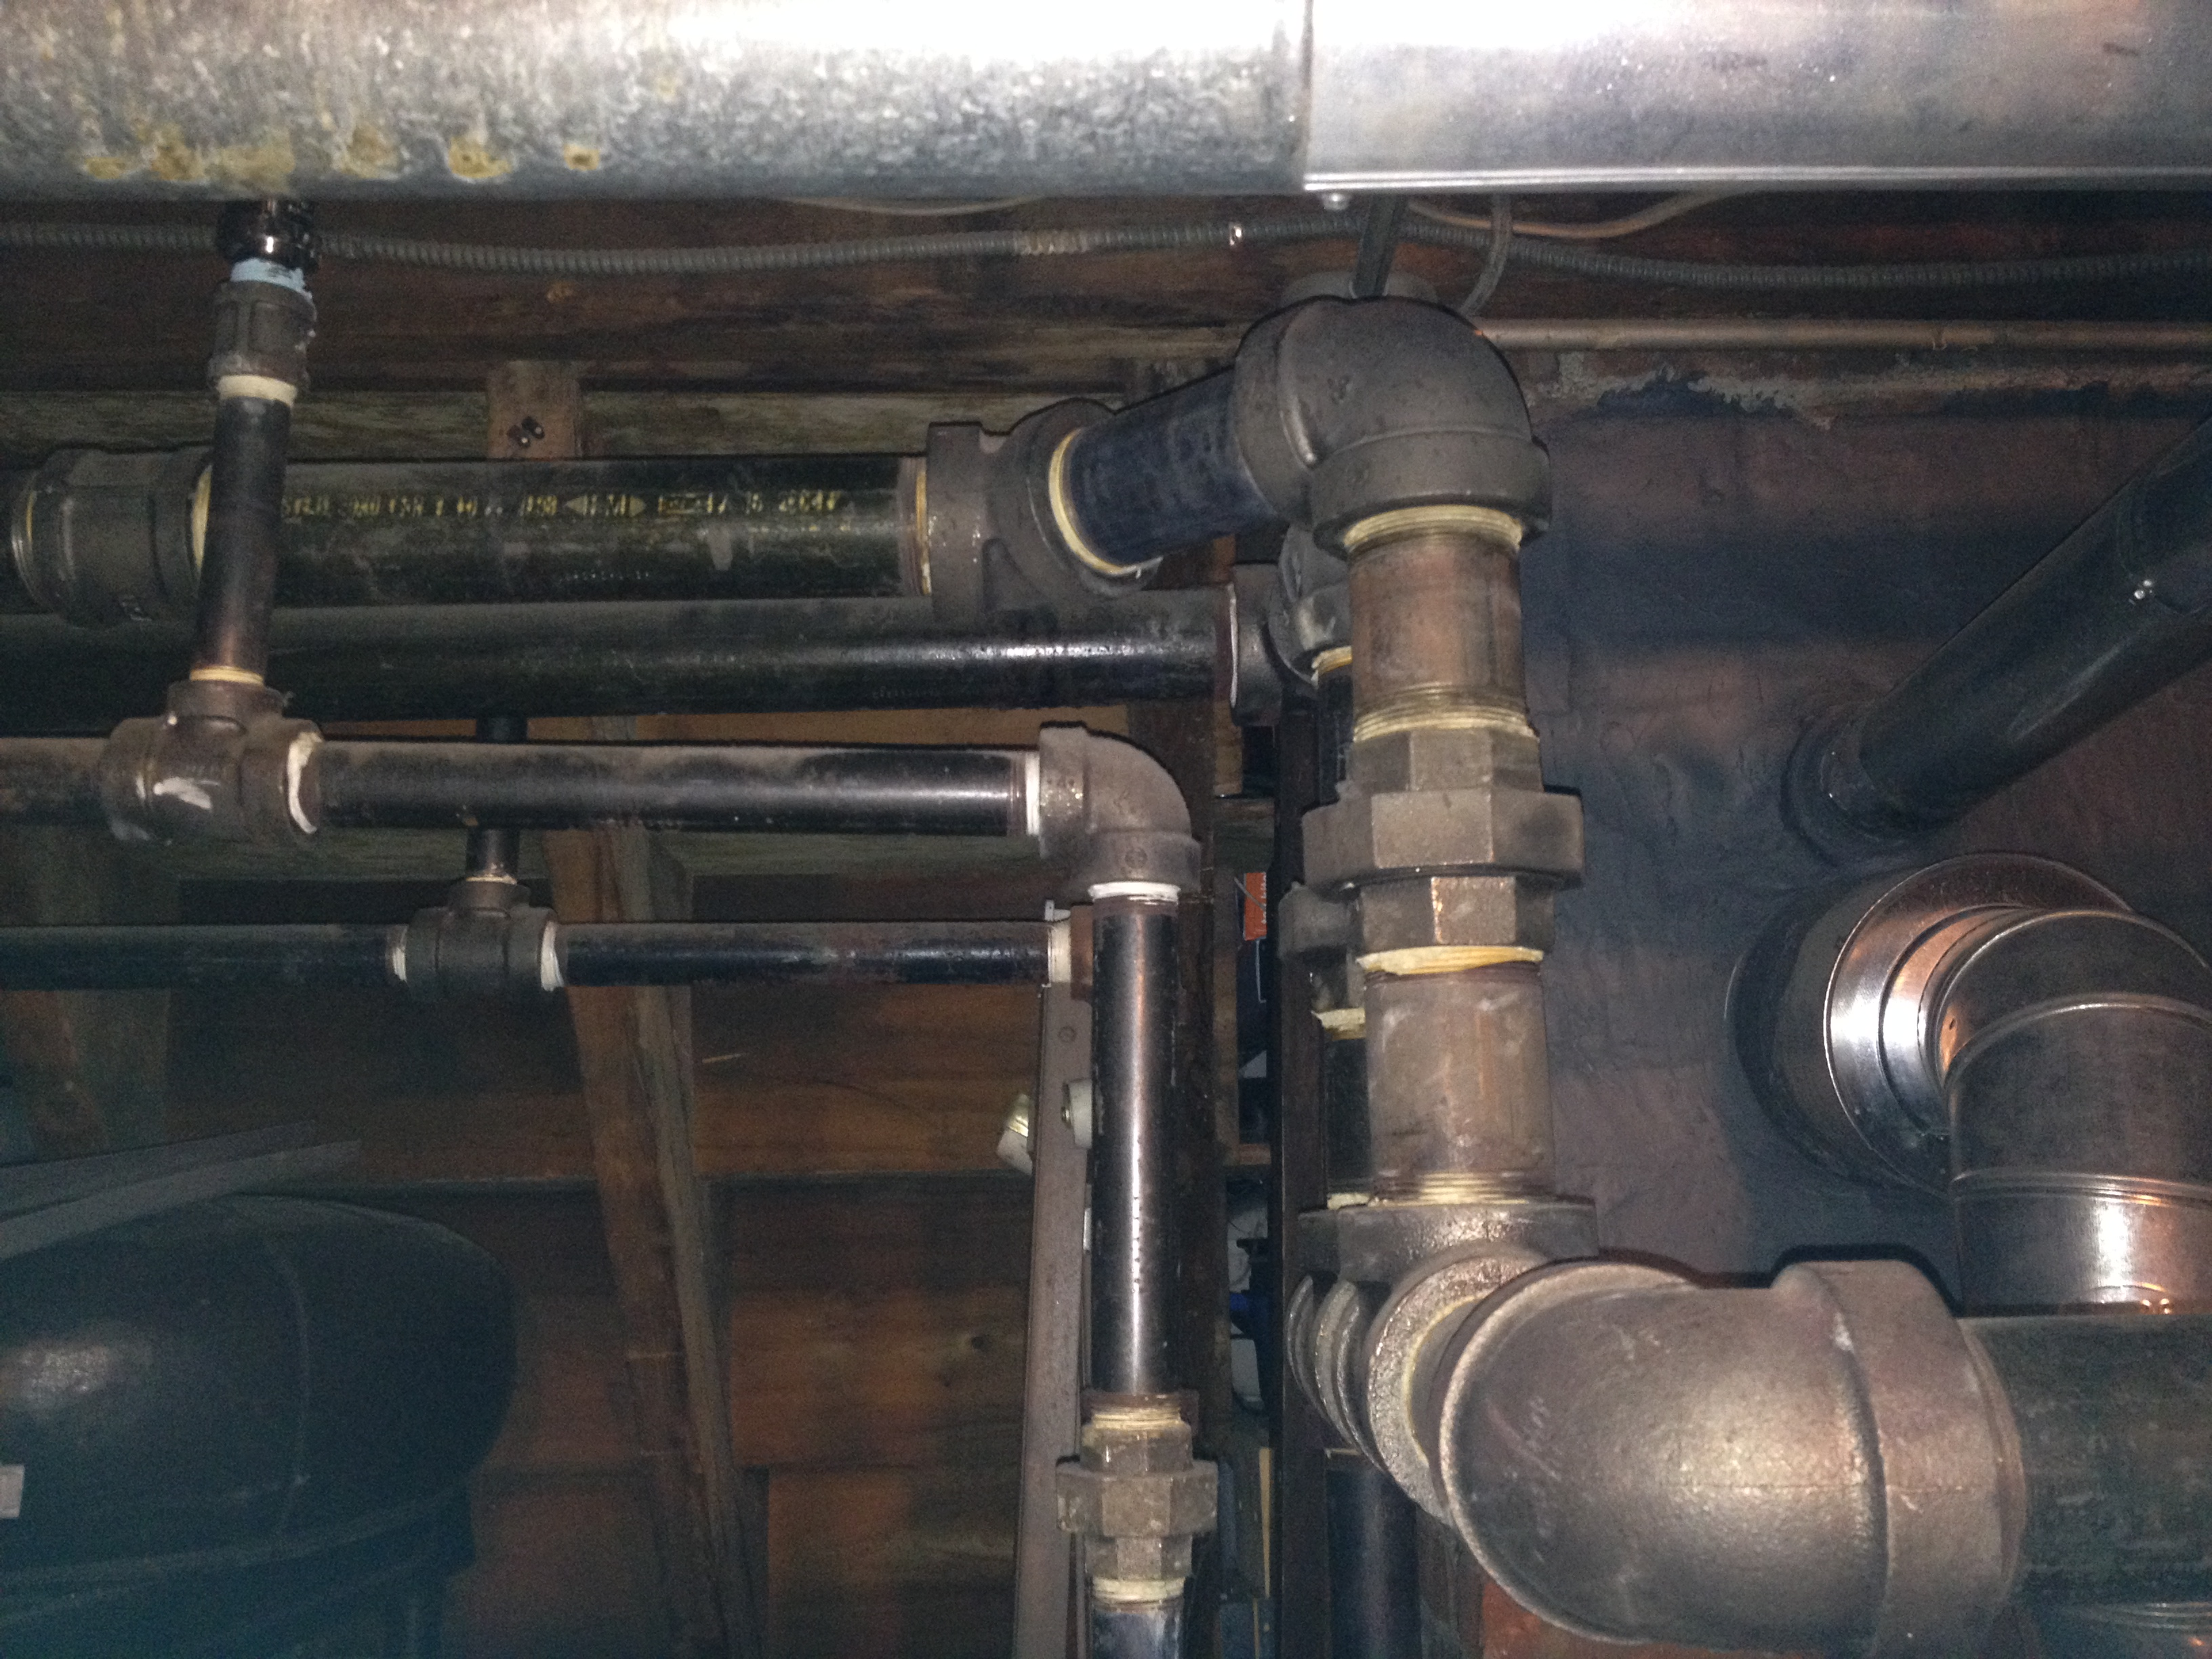 Steam Leak From Pipe : Air vent leaking on pipe steam radiator — heating help